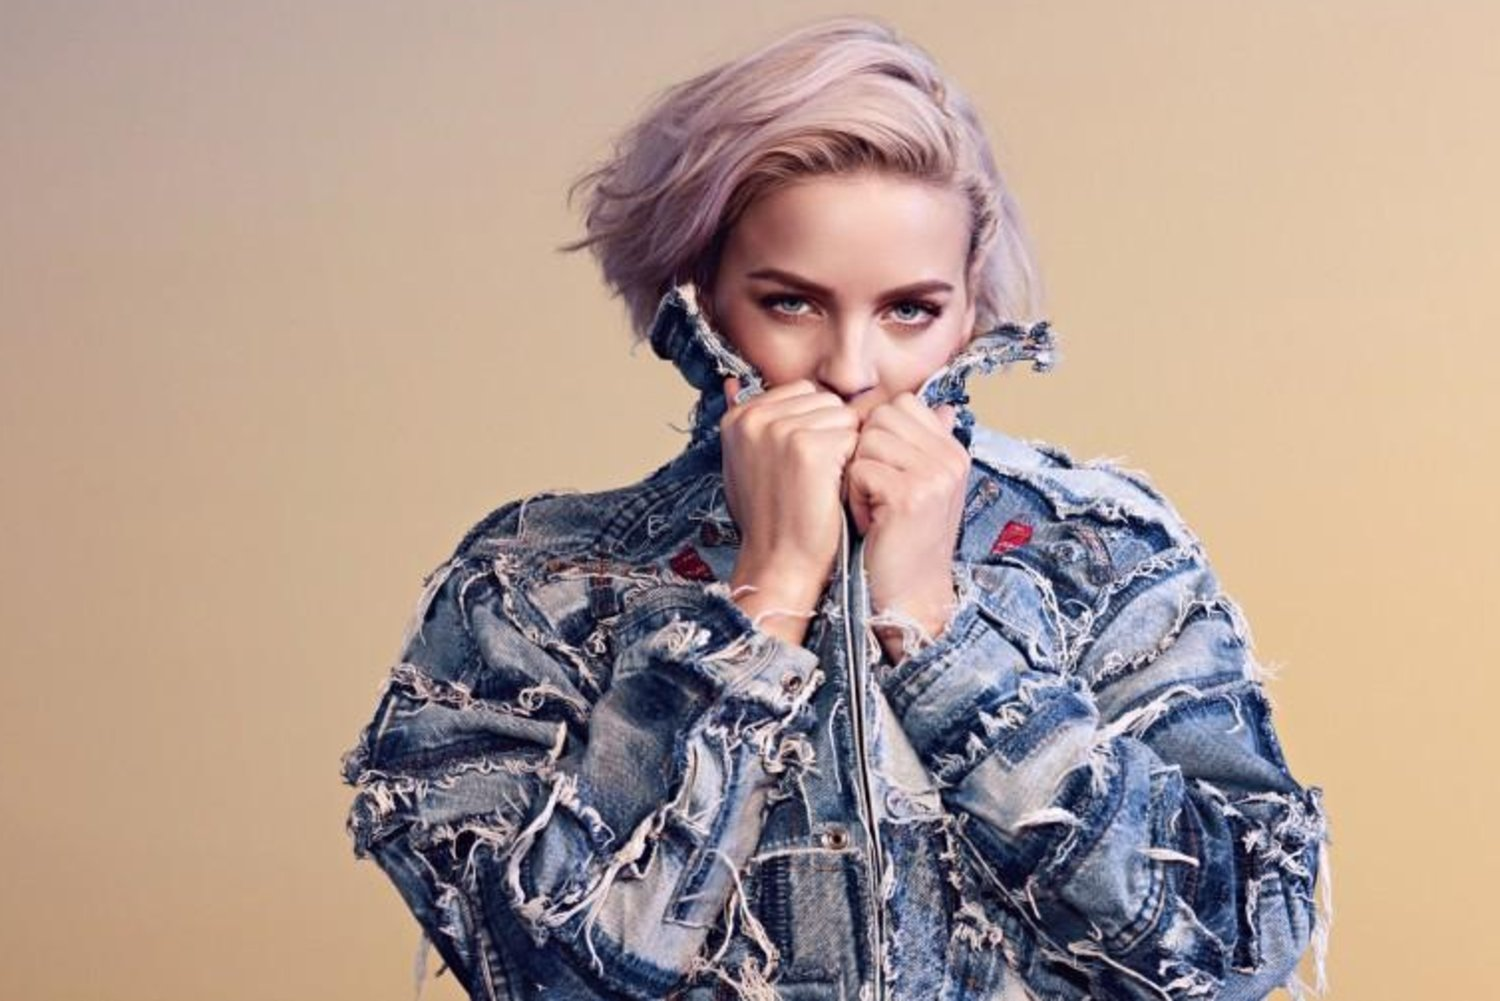 watch-anne-marie-perform-exclusively-at-bestival-for-red-bull-tv